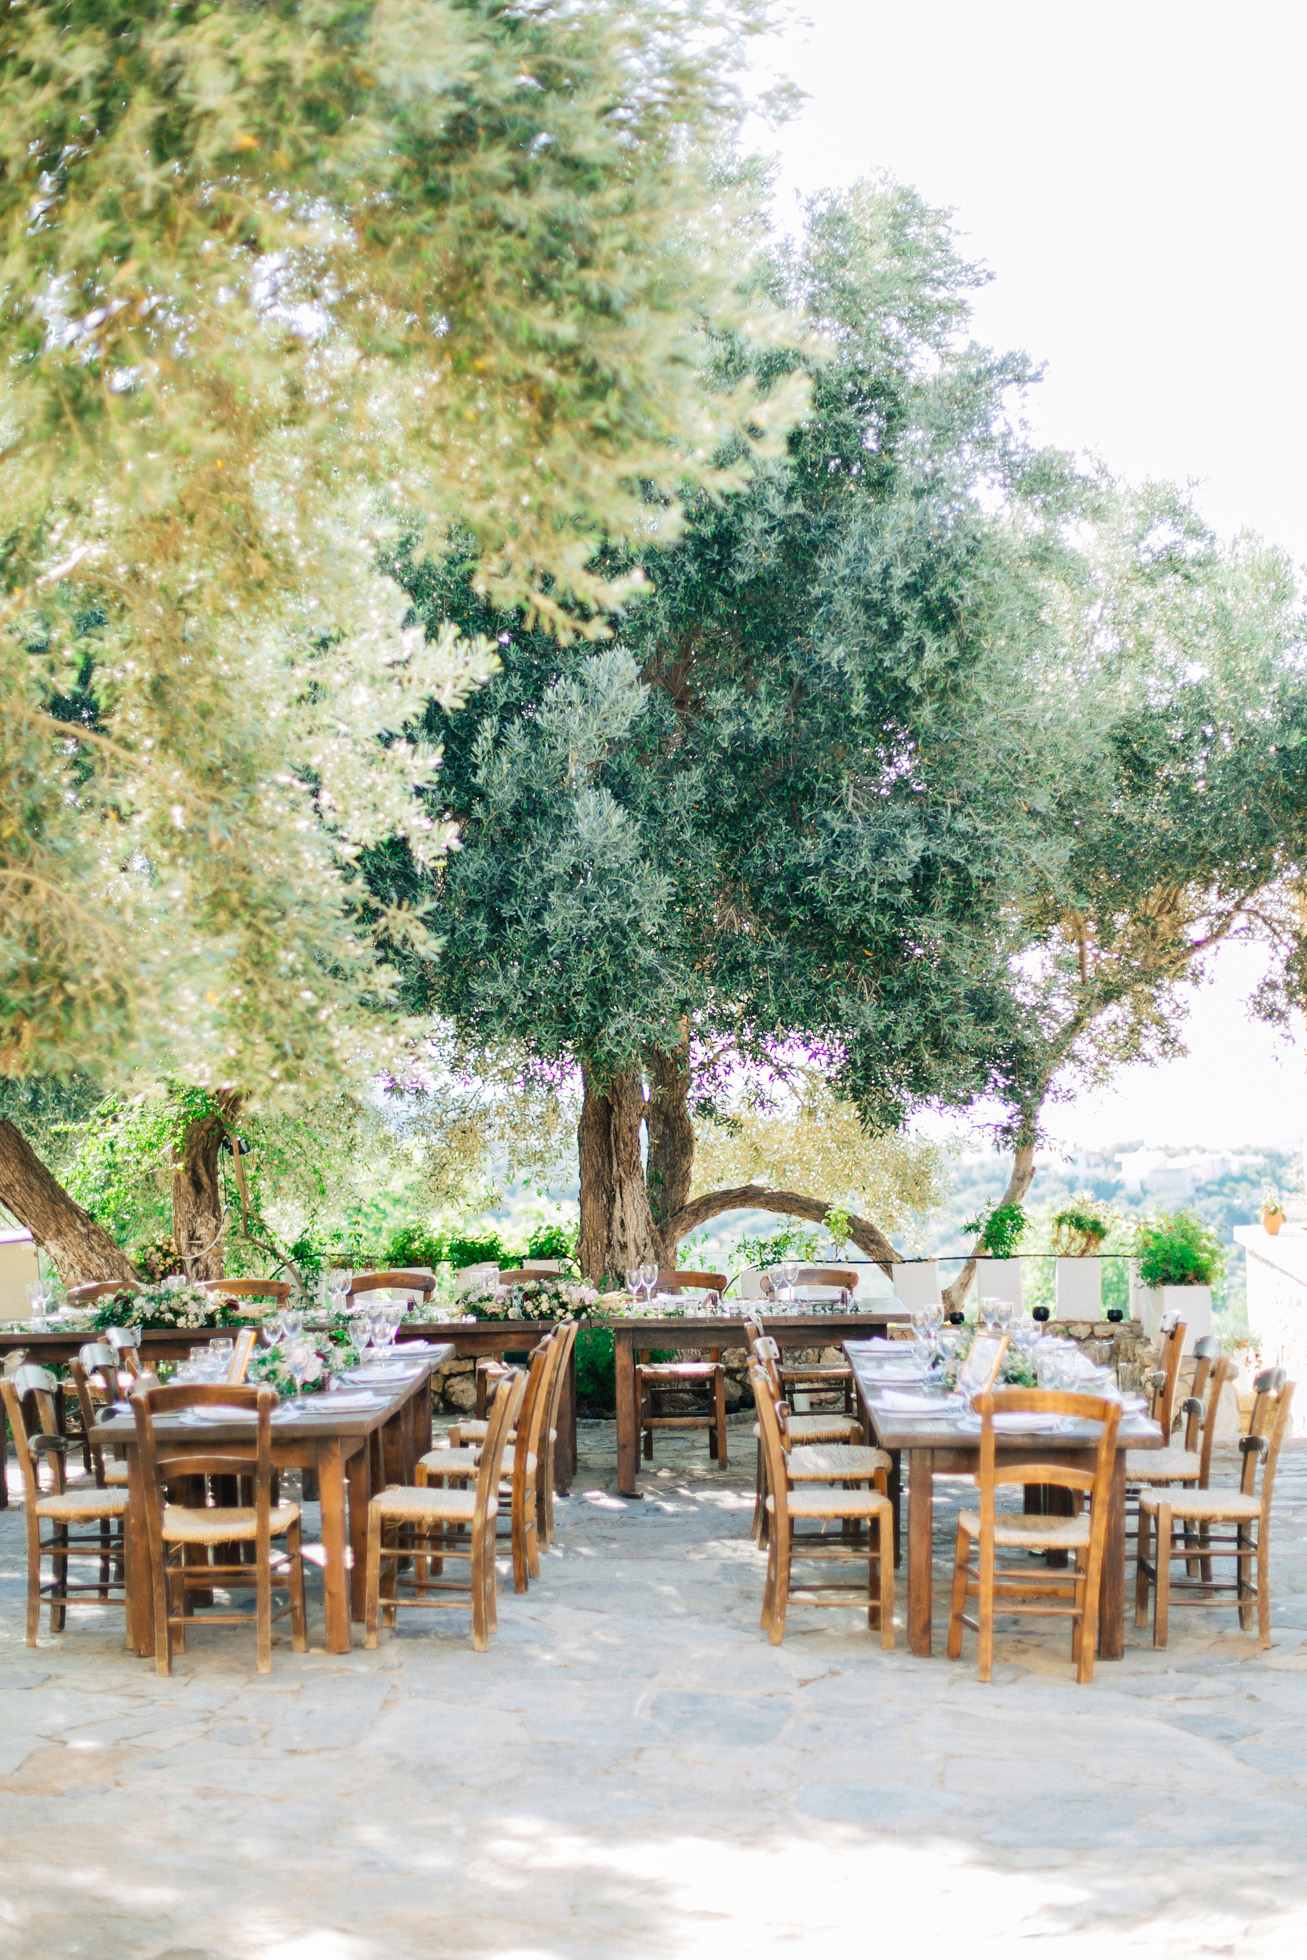 Rich dinner reception table settup and details created by Fabio Zardi and captured by wedding photographer during a destination wedding in Agreco farm in Crete.